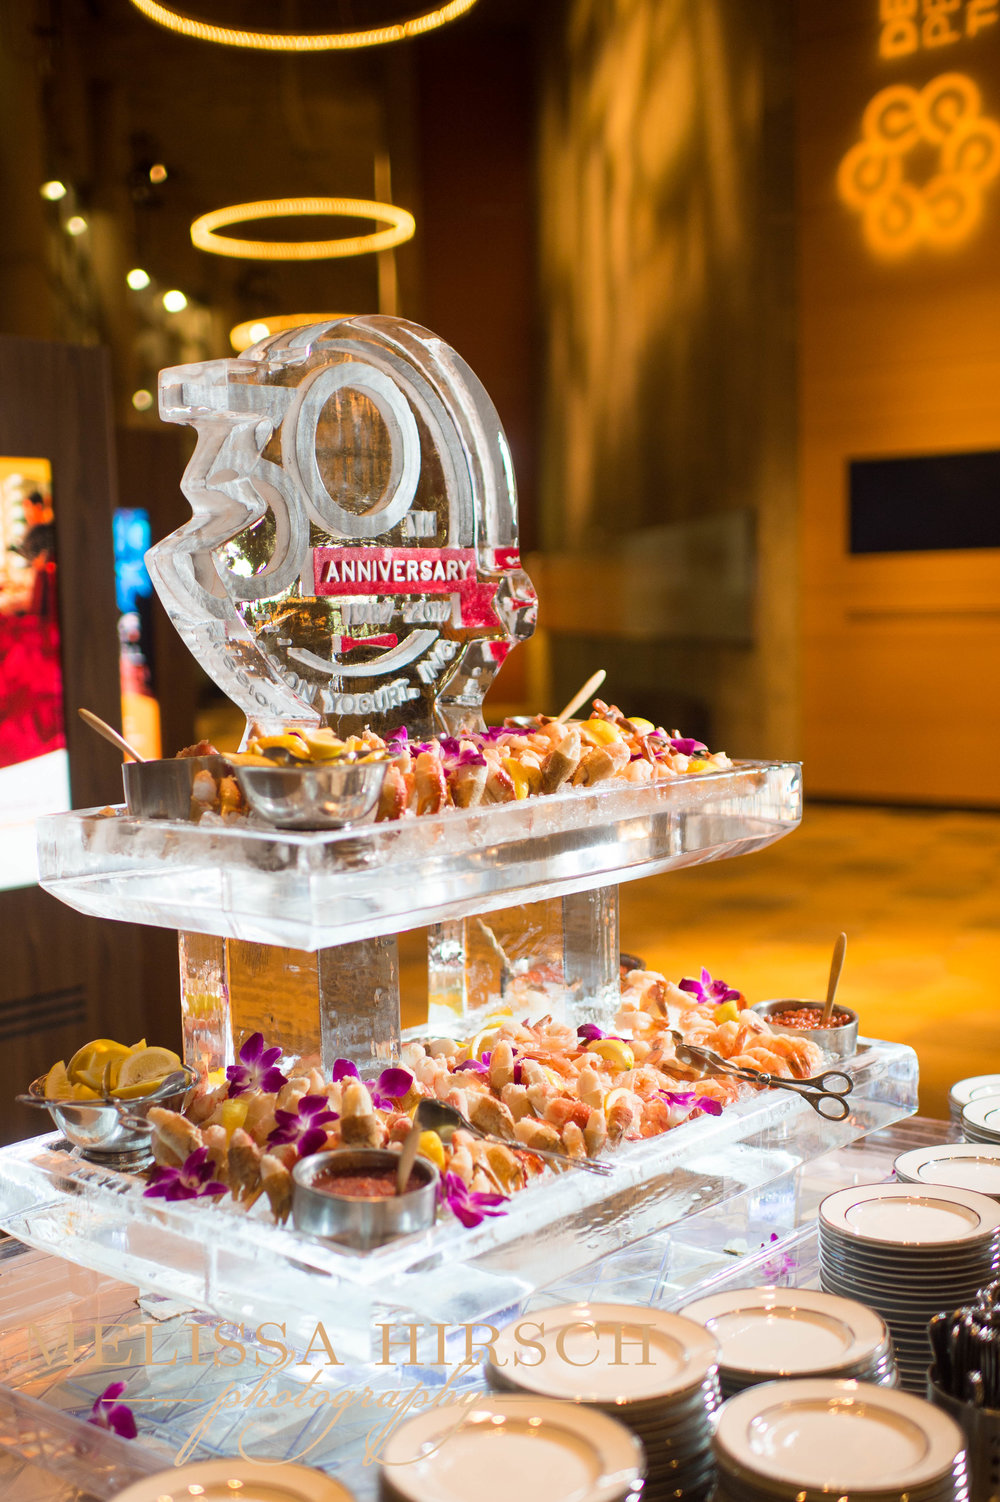 Just loved this ice sculpture. So fun to photograph.